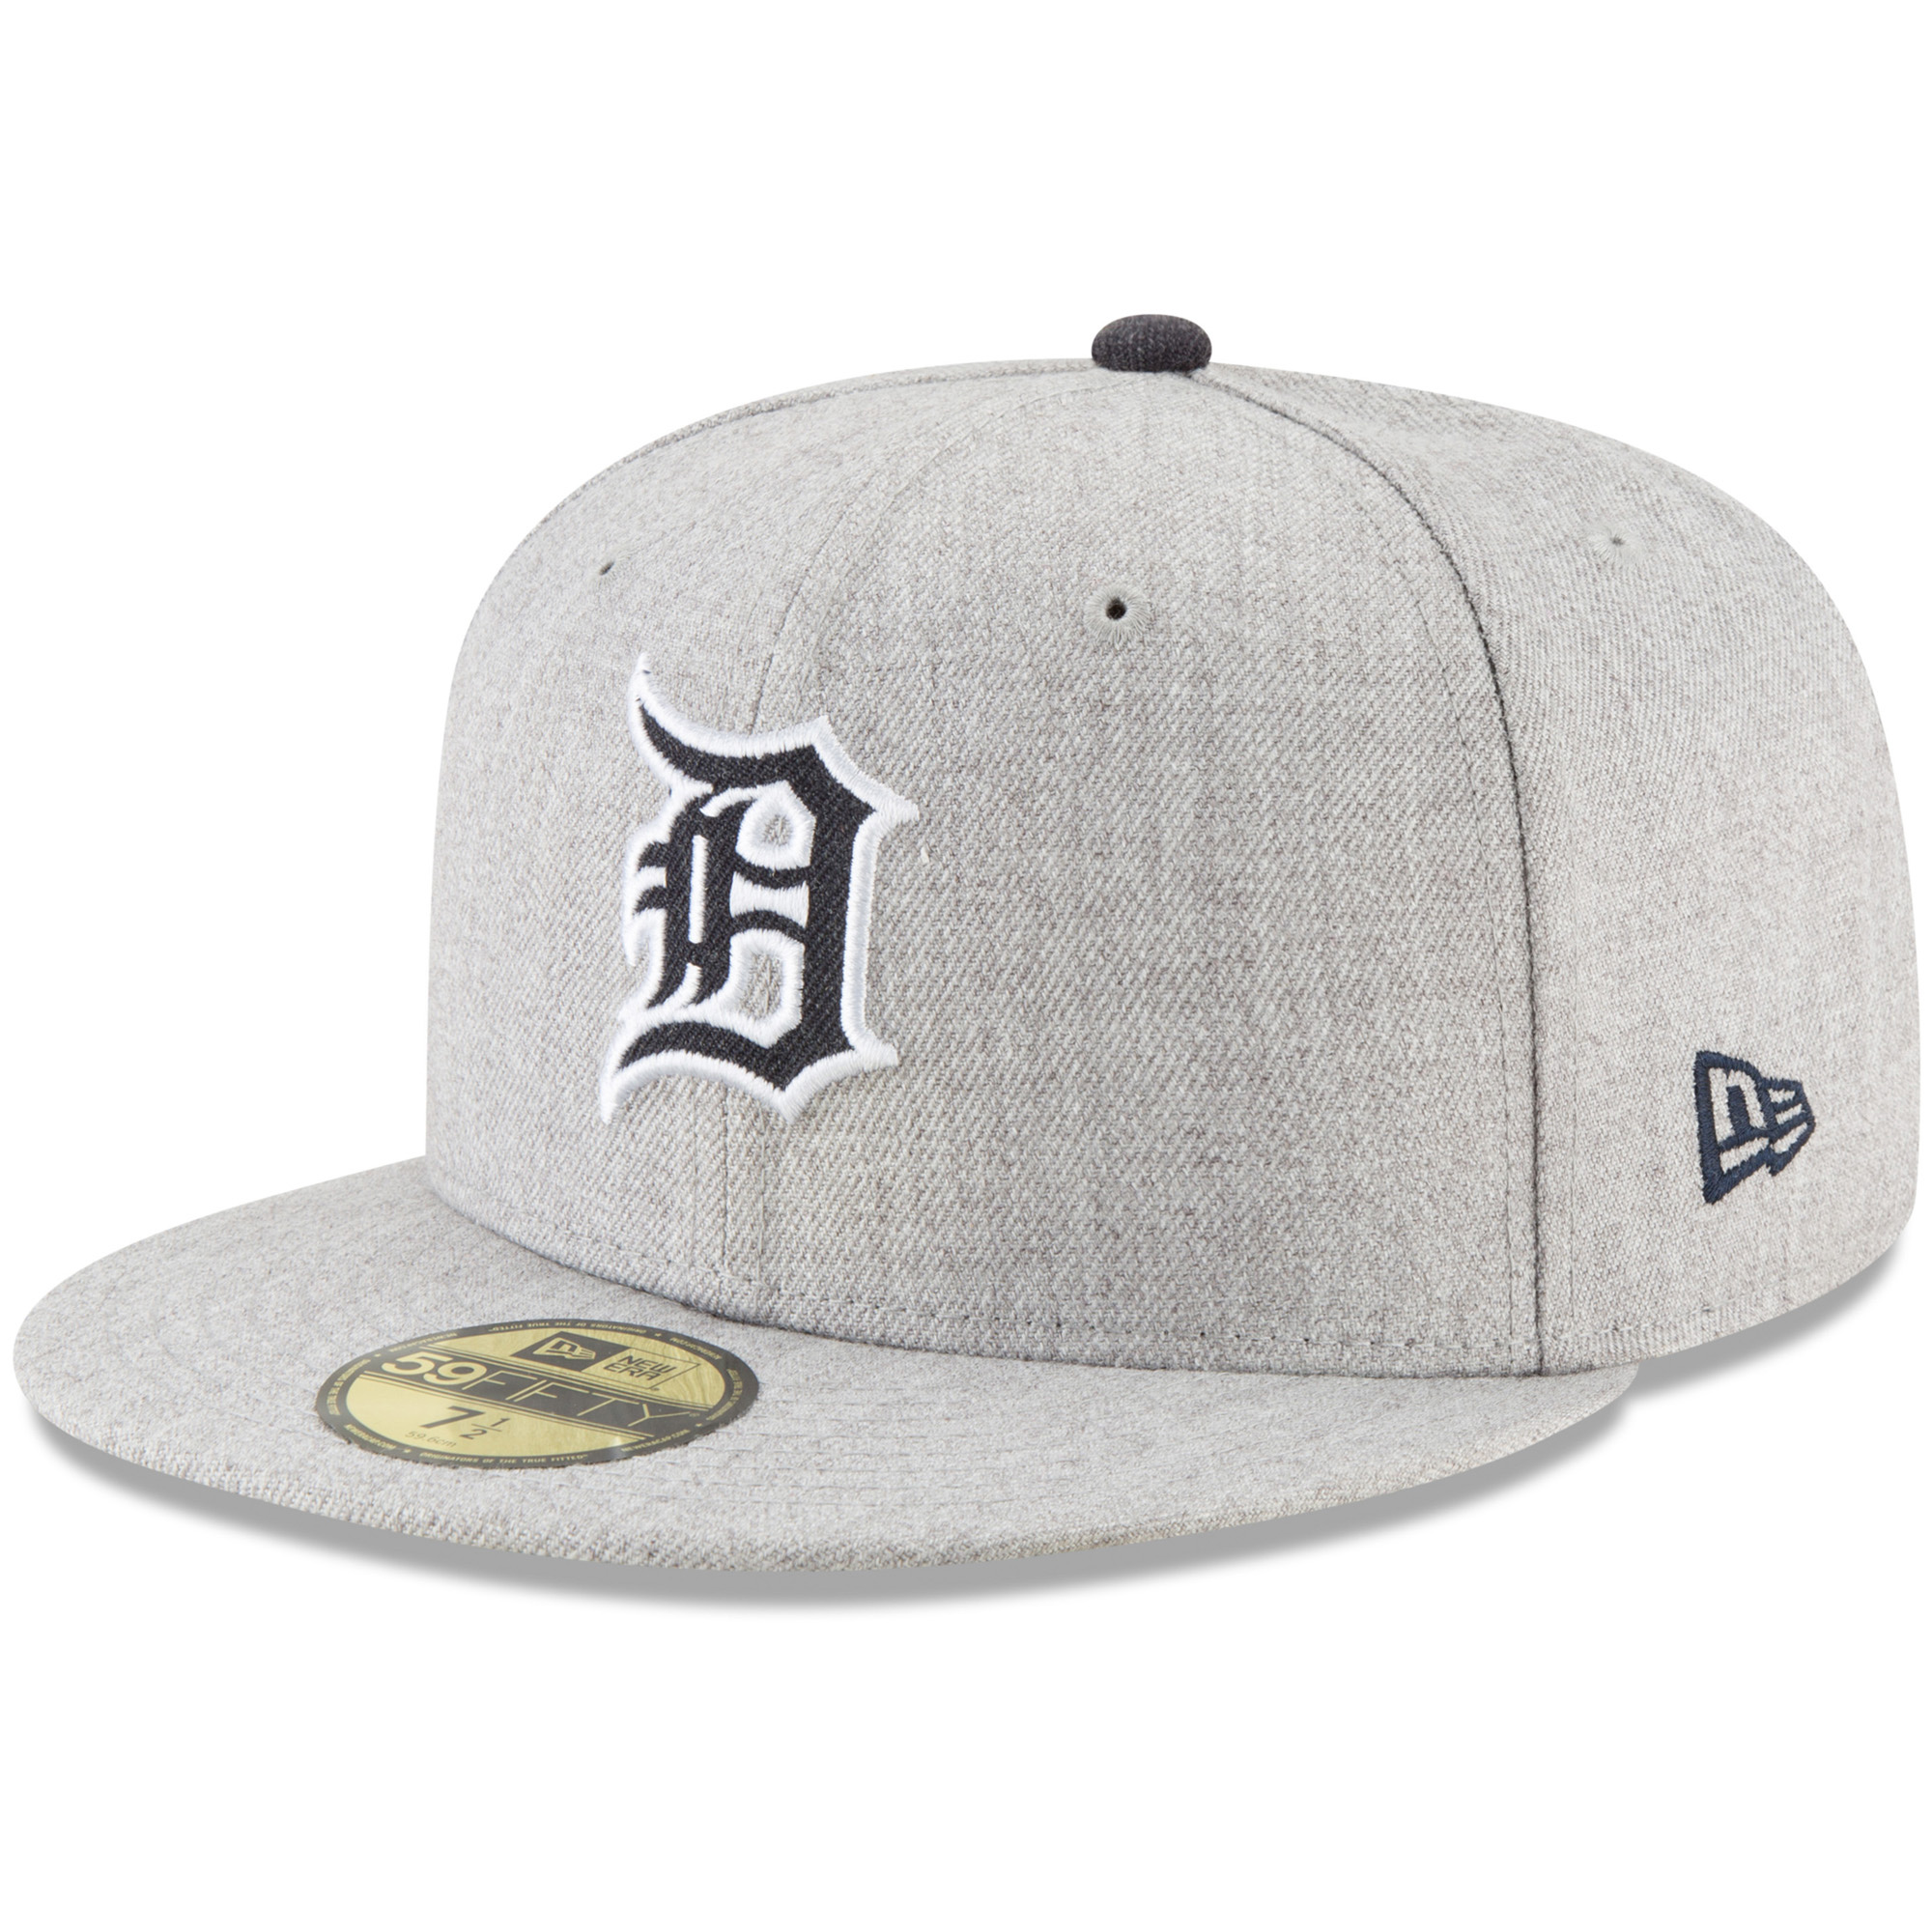 Detroit Tigers New Era Hype 59FIFTY Fitted Hat - Heathered Gray